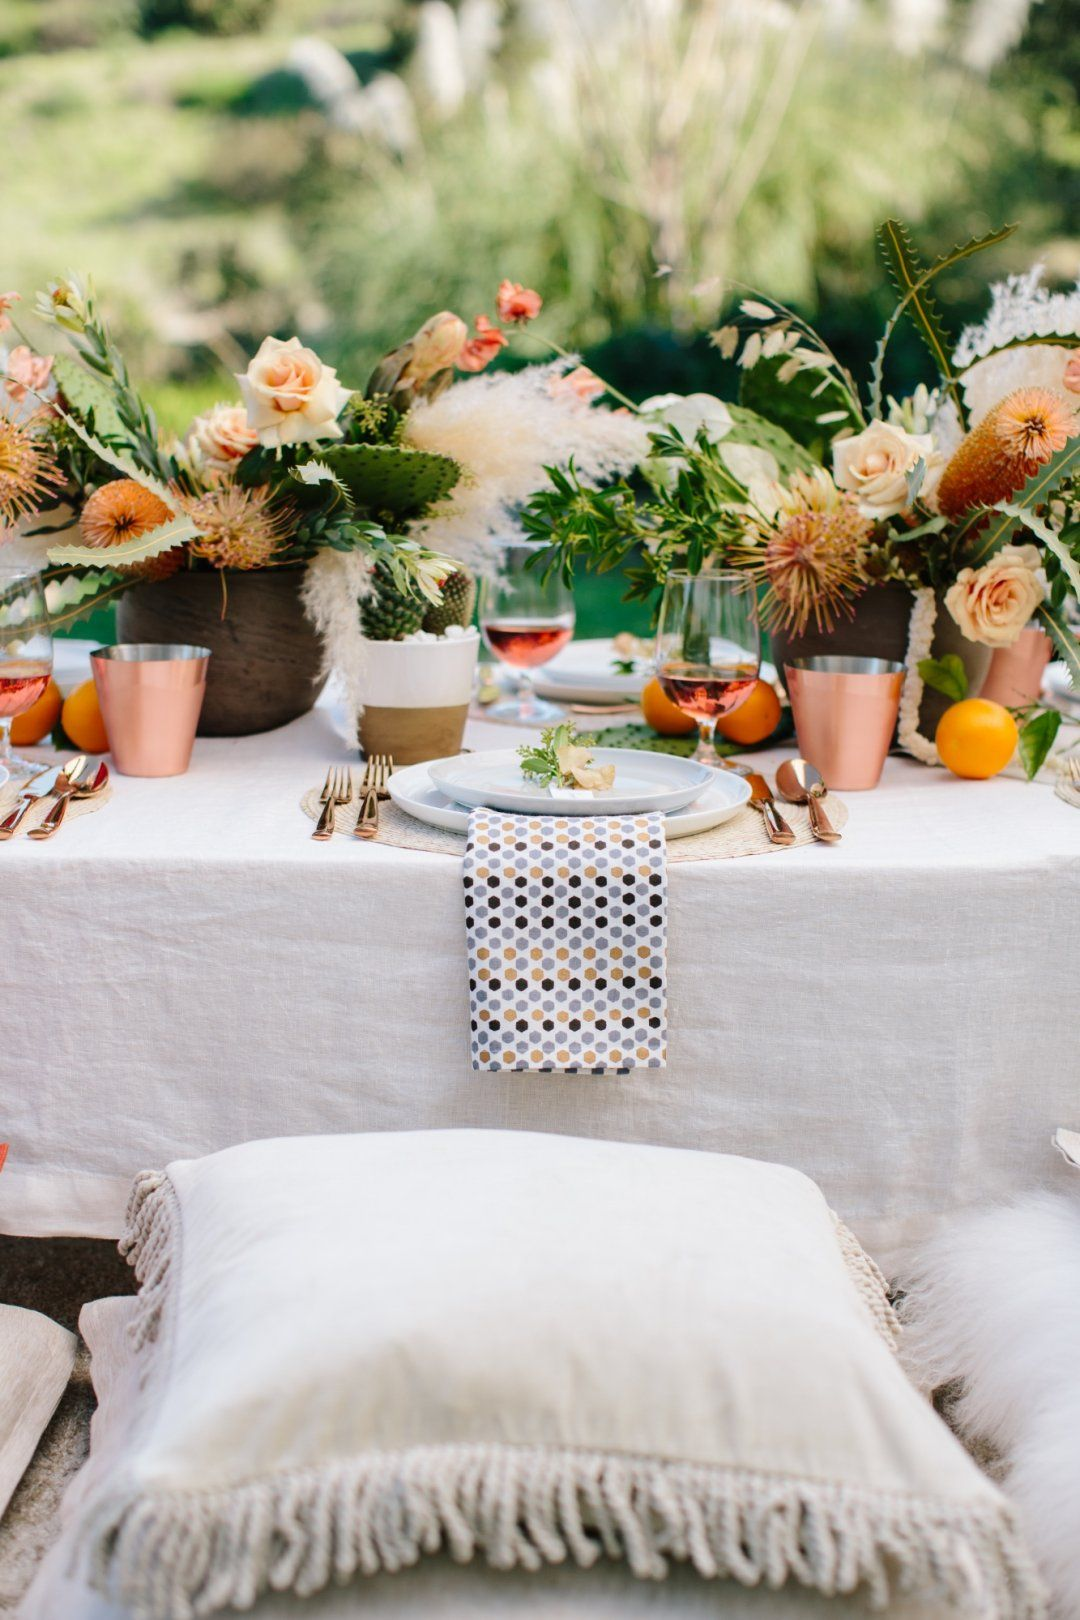 How to Host a Summer Party | Table setting inspiration, Autumn ...